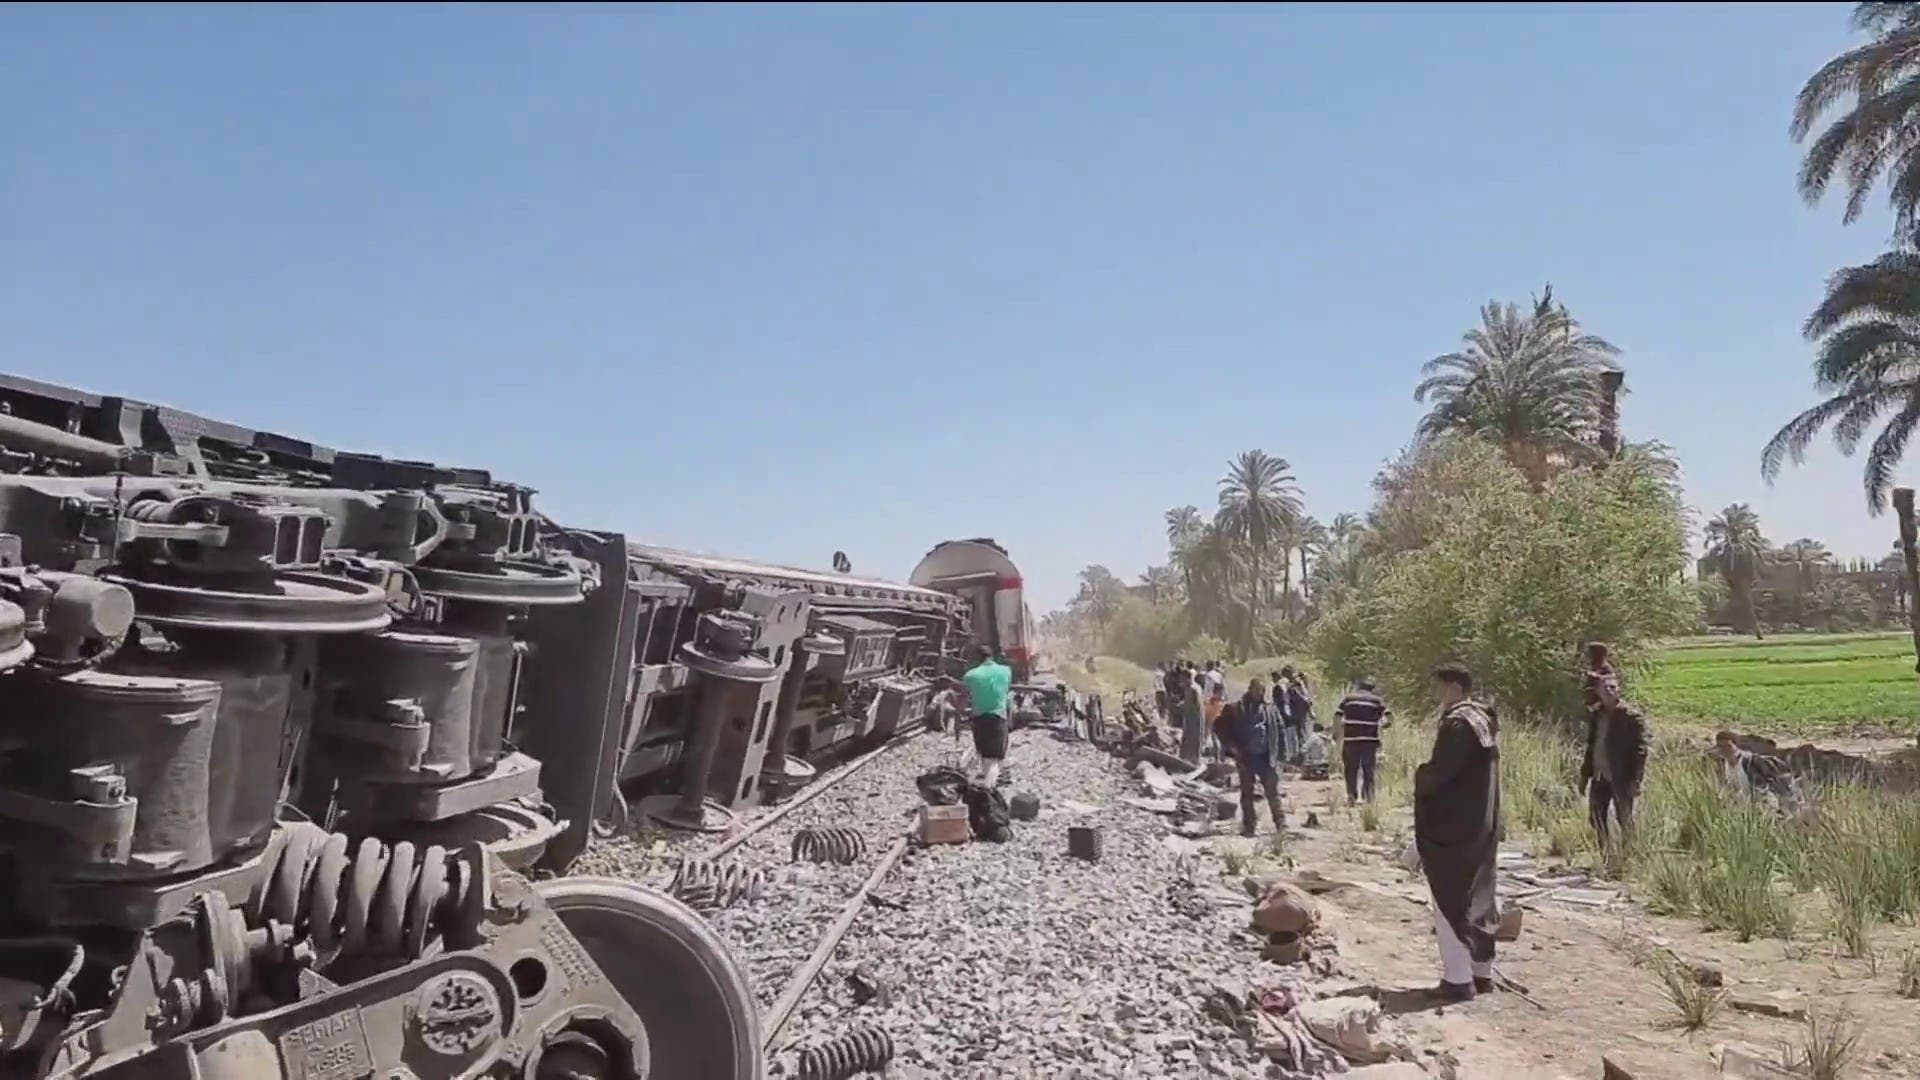 Passenger trains collided in southern Egypt. (Supplied)